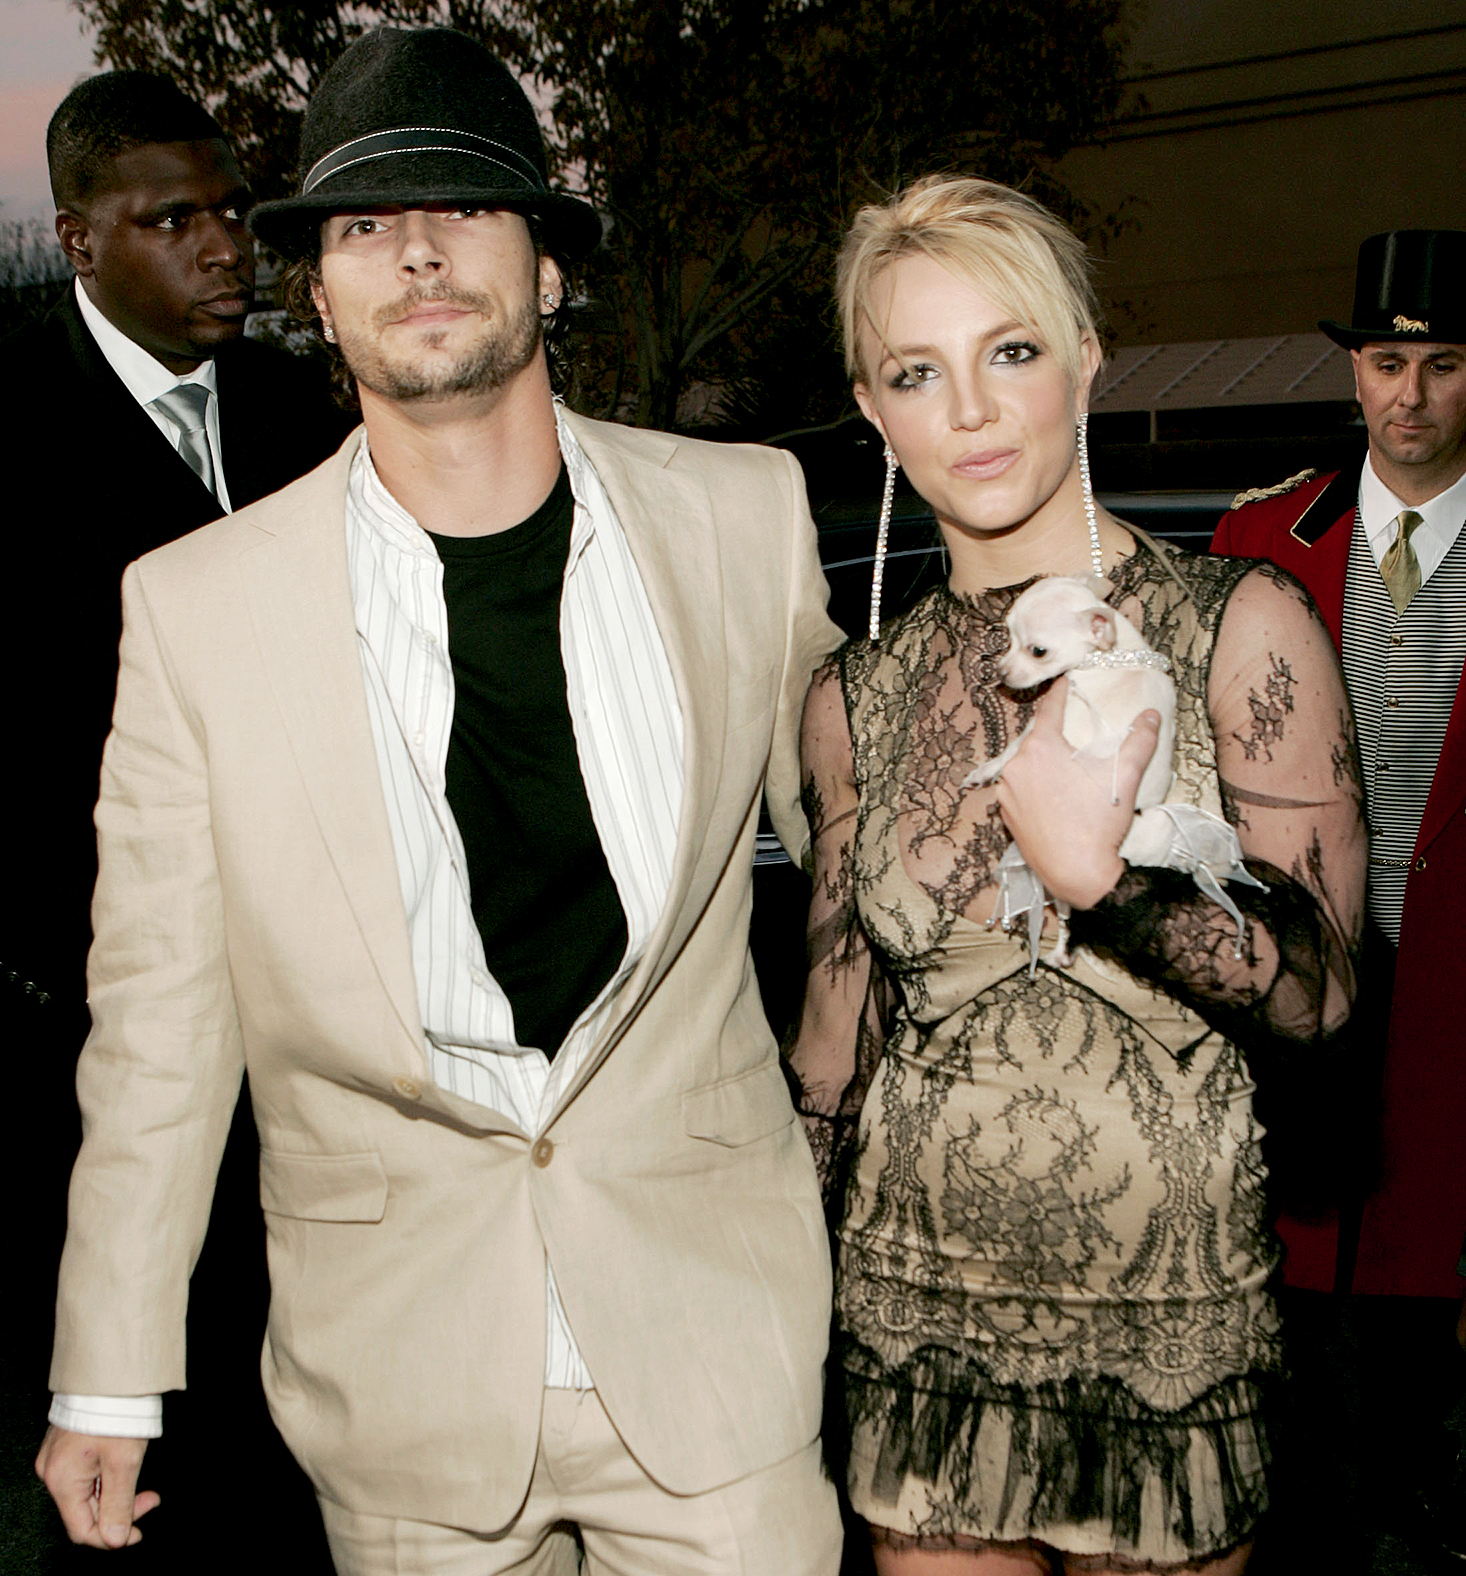 """November-2006-Kevin-Federline,-Britney-Spears - Things ended between the duo when the Crossroads star filed for divorce in November 2006, citing """"irreconcilable differences."""" In her initial filing, Spears asked for legal and physical custody of her two sons, with Federline to receive """" reasonable visitation rights ."""""""